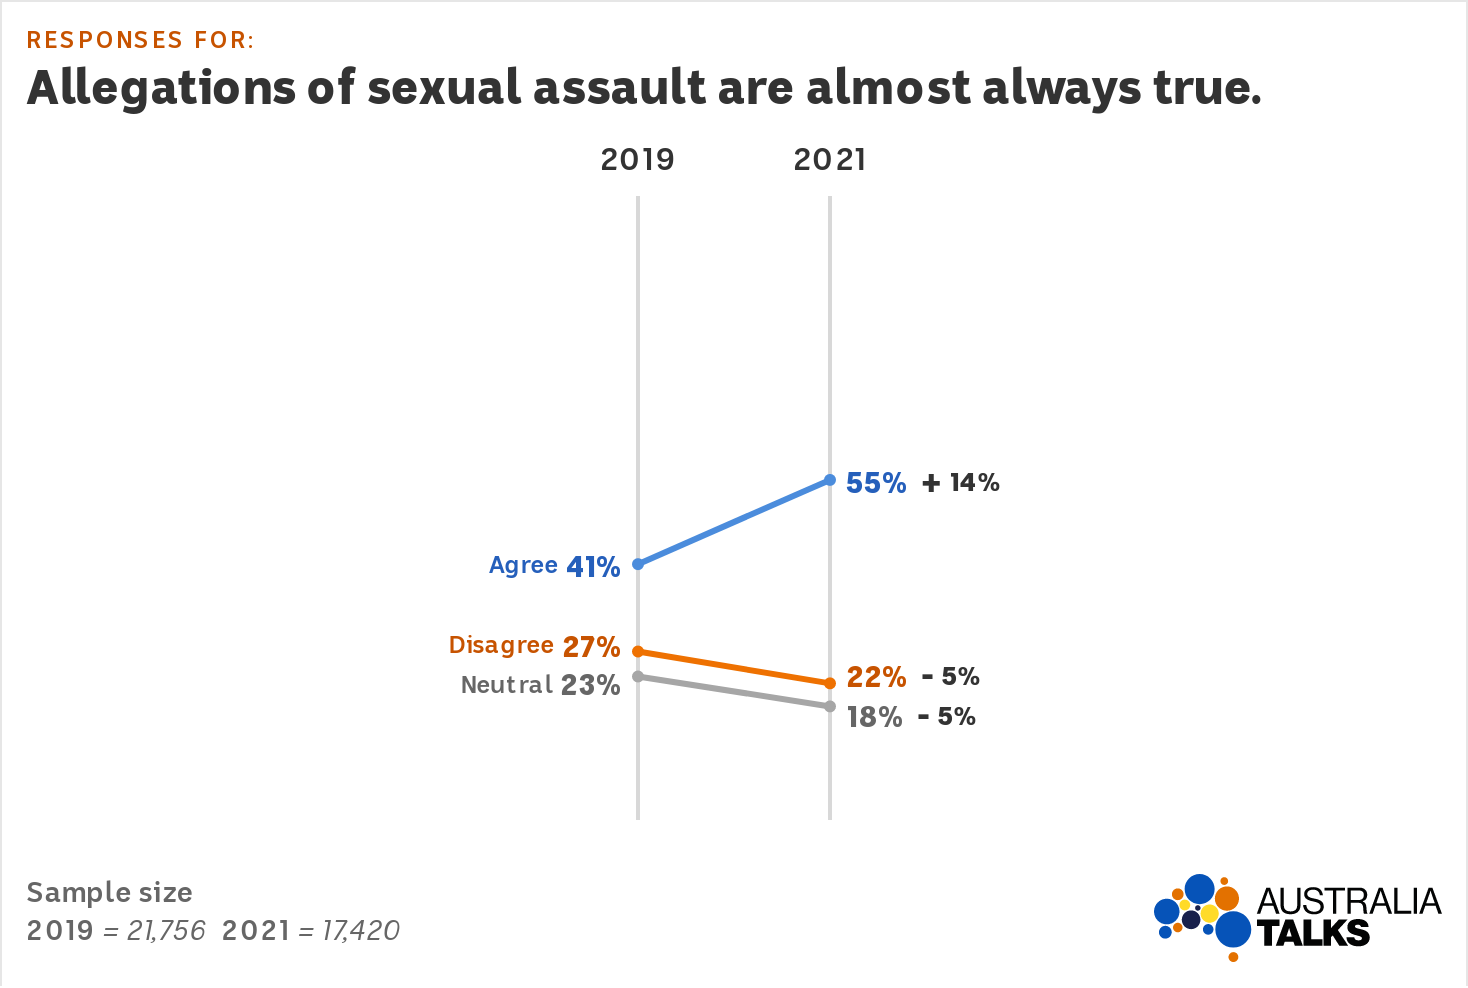 Graph shows agreement with the statement increasing from 41% to 55%.